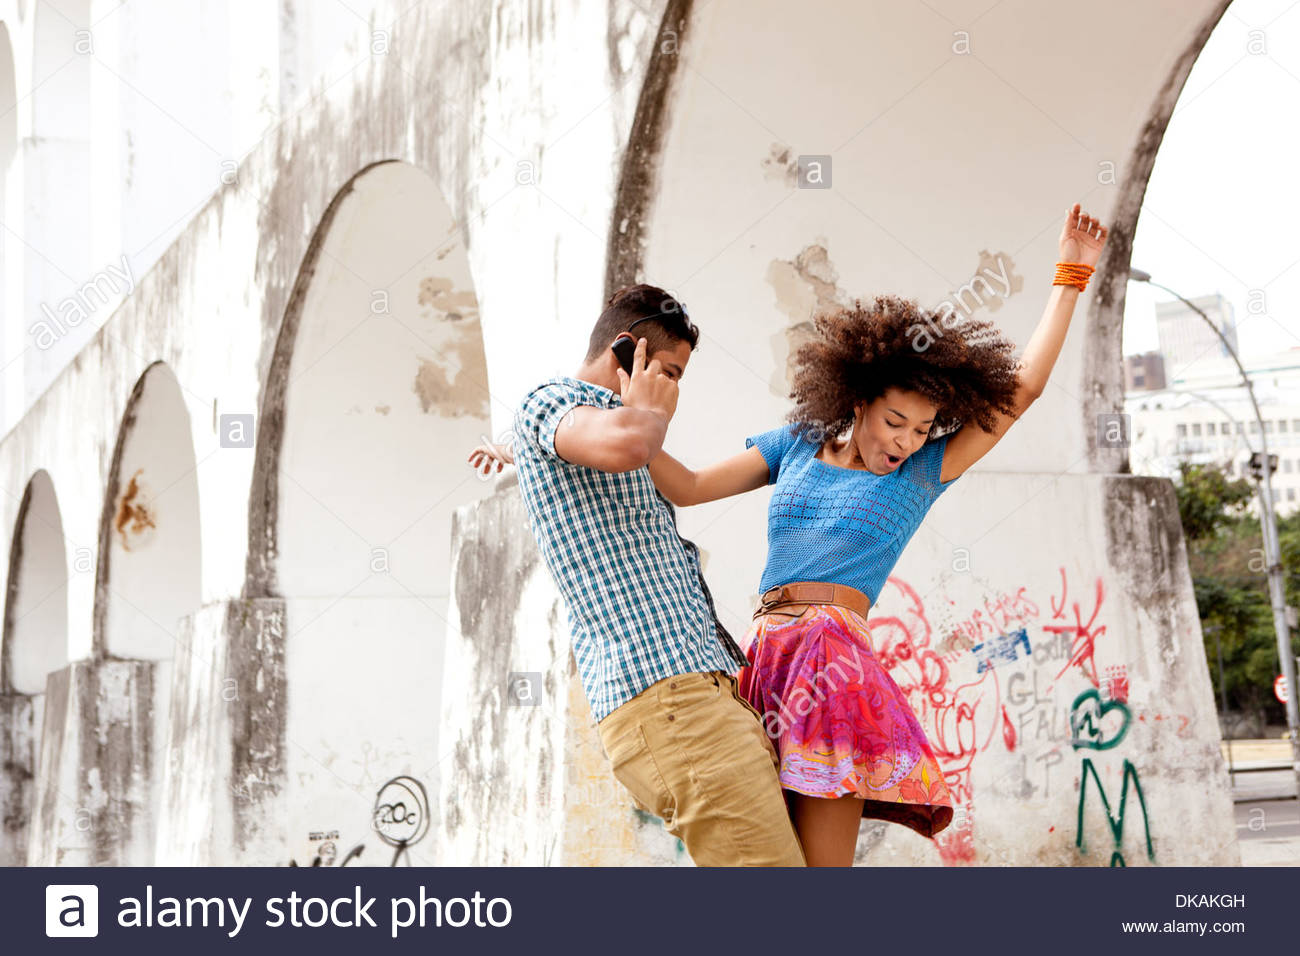 Young couple dancing in front of Carioca Aqueduct, man on phonecall, Rio, Brazil - Stock Image